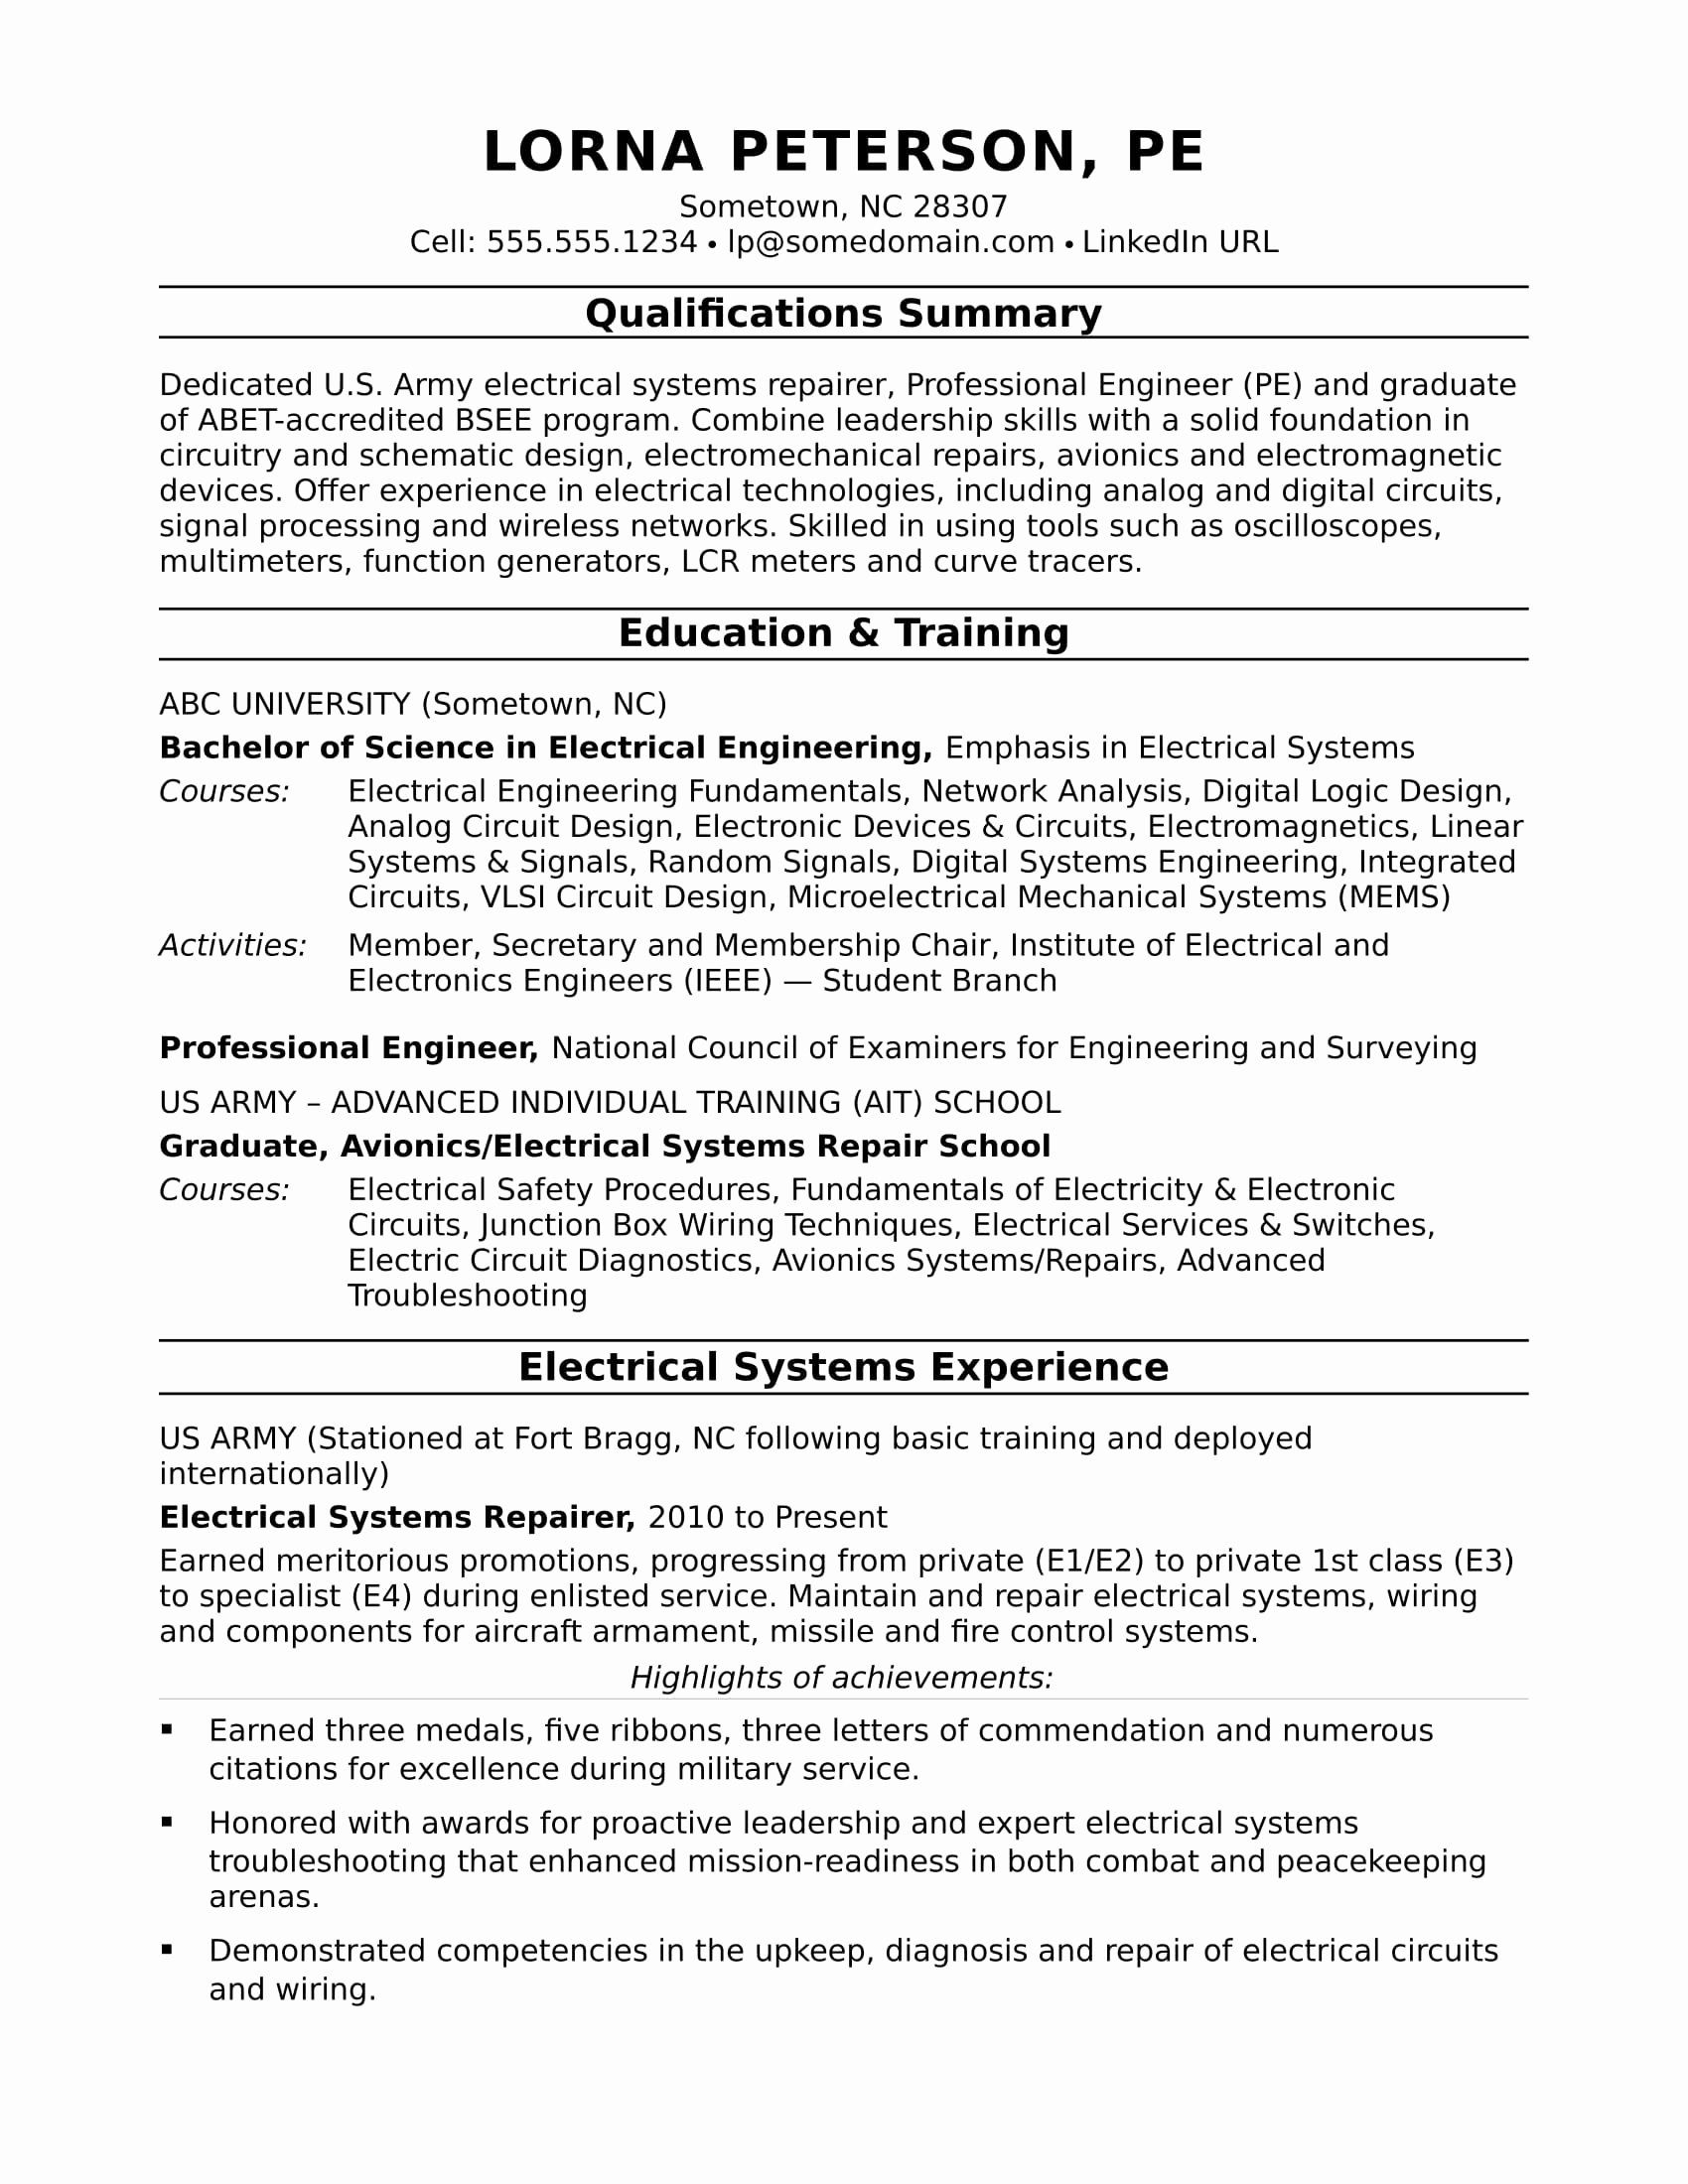 Electrical Engineering Resume No Experience Printable Resume Template Engineering Resume Student Resume Template Student Resume